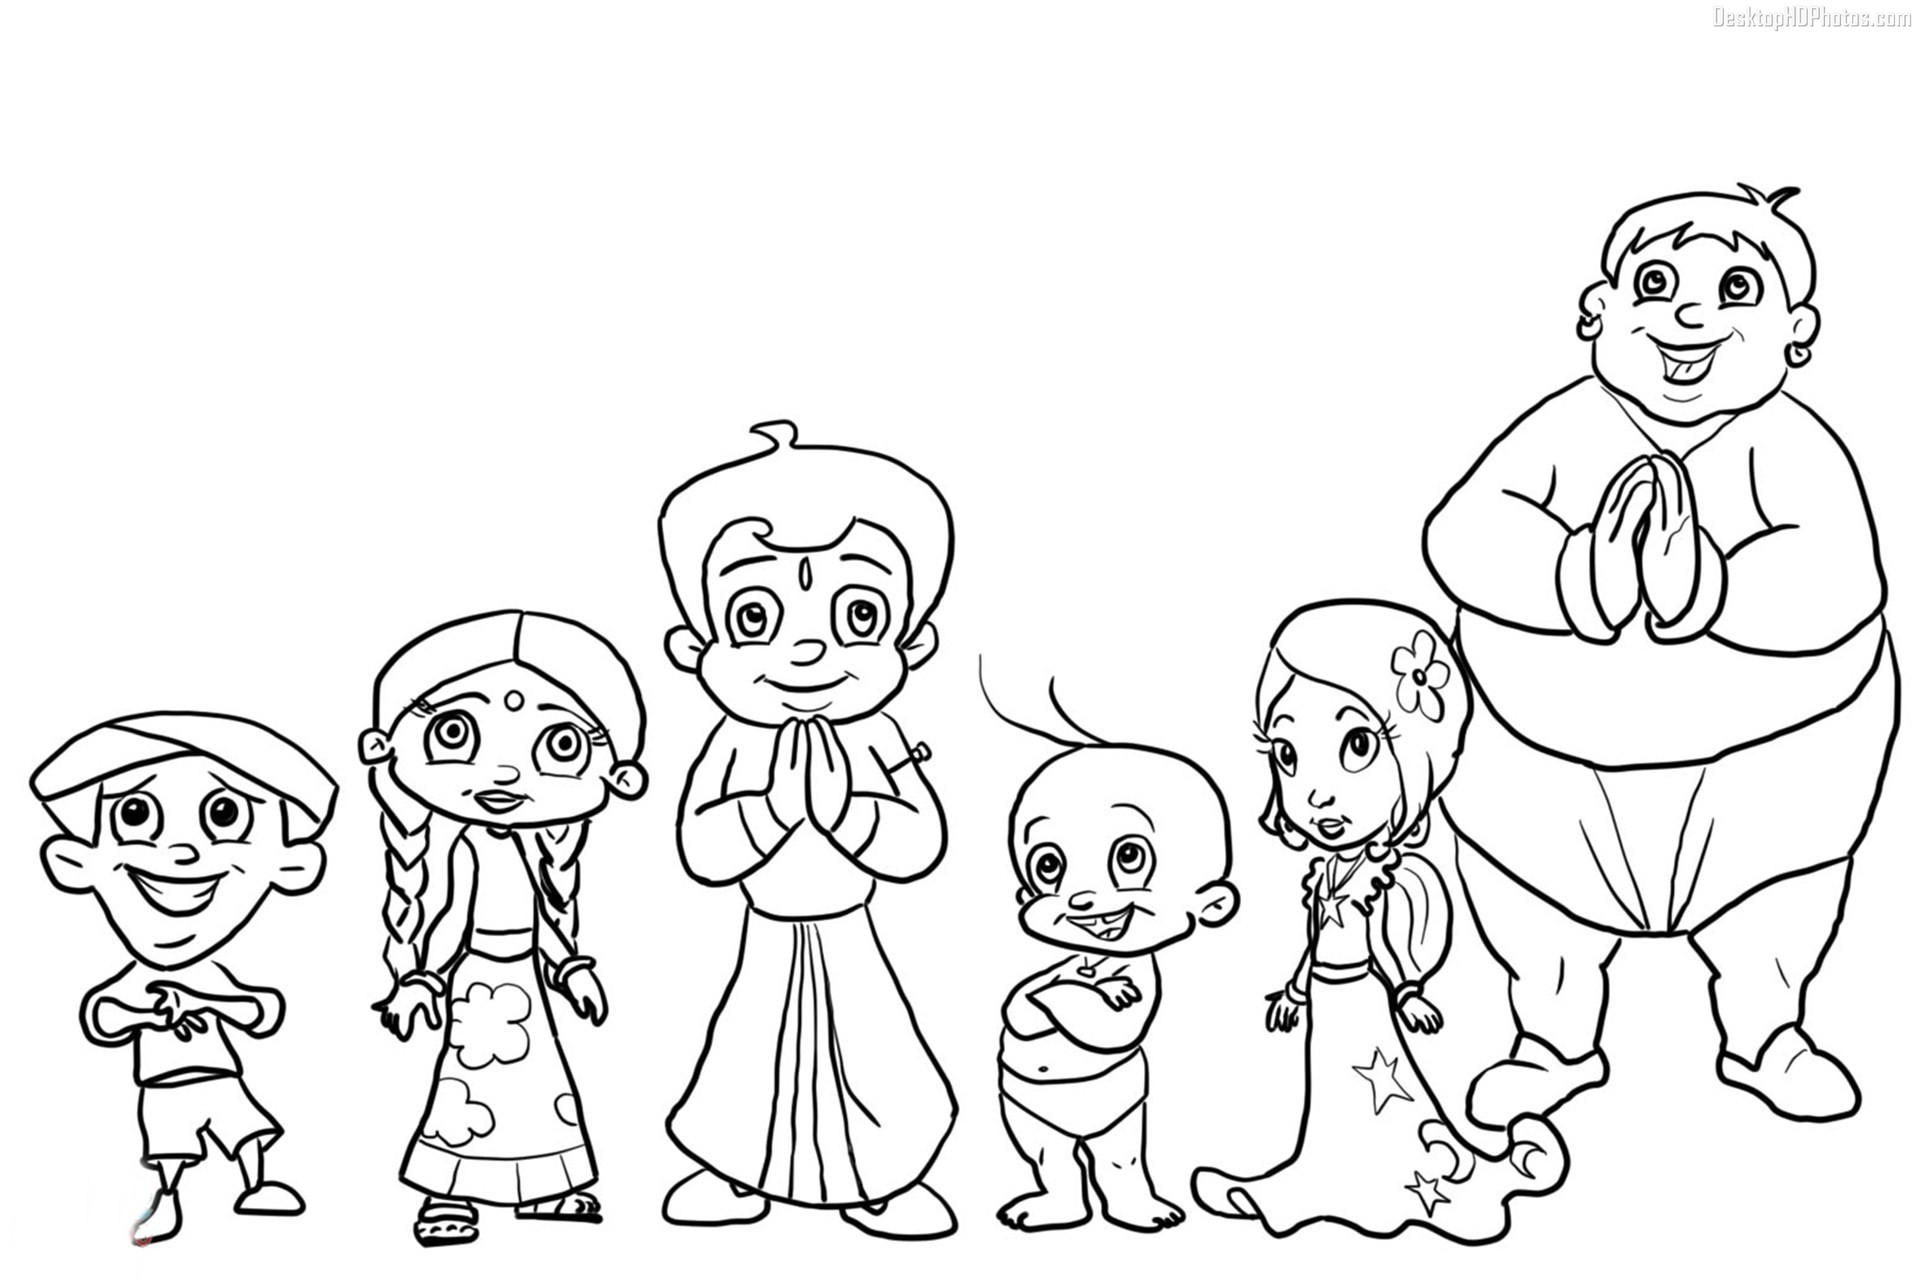 Online Coloring Chota Bheem : Chota bheem coloring pages to print sketch